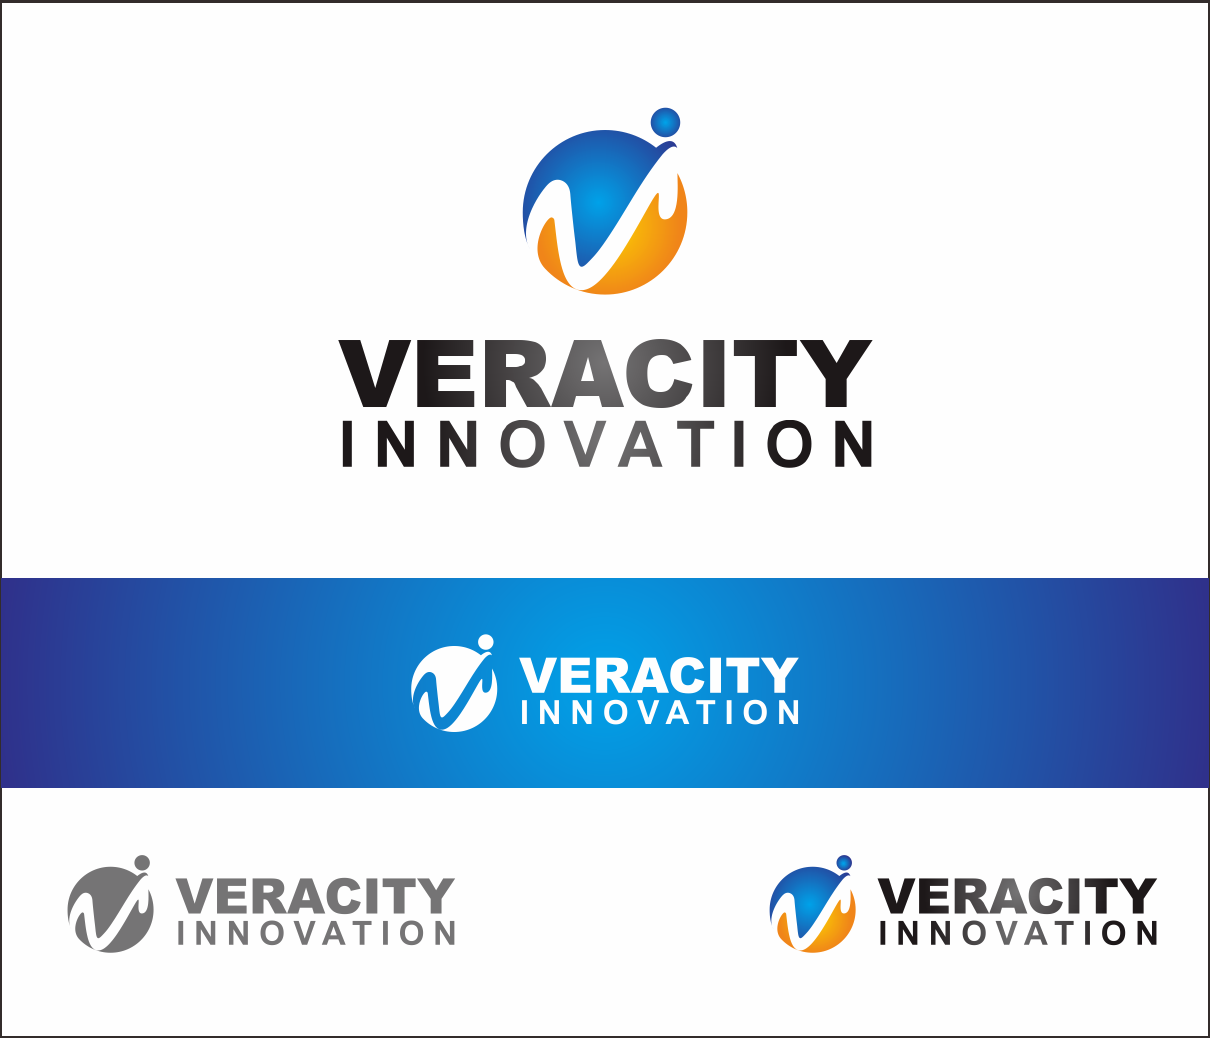 Logo Design by Armada Jamaluddin - Entry No. 167 in the Logo Design Contest Creative Logo Design for Veracity Innovation, LLC.